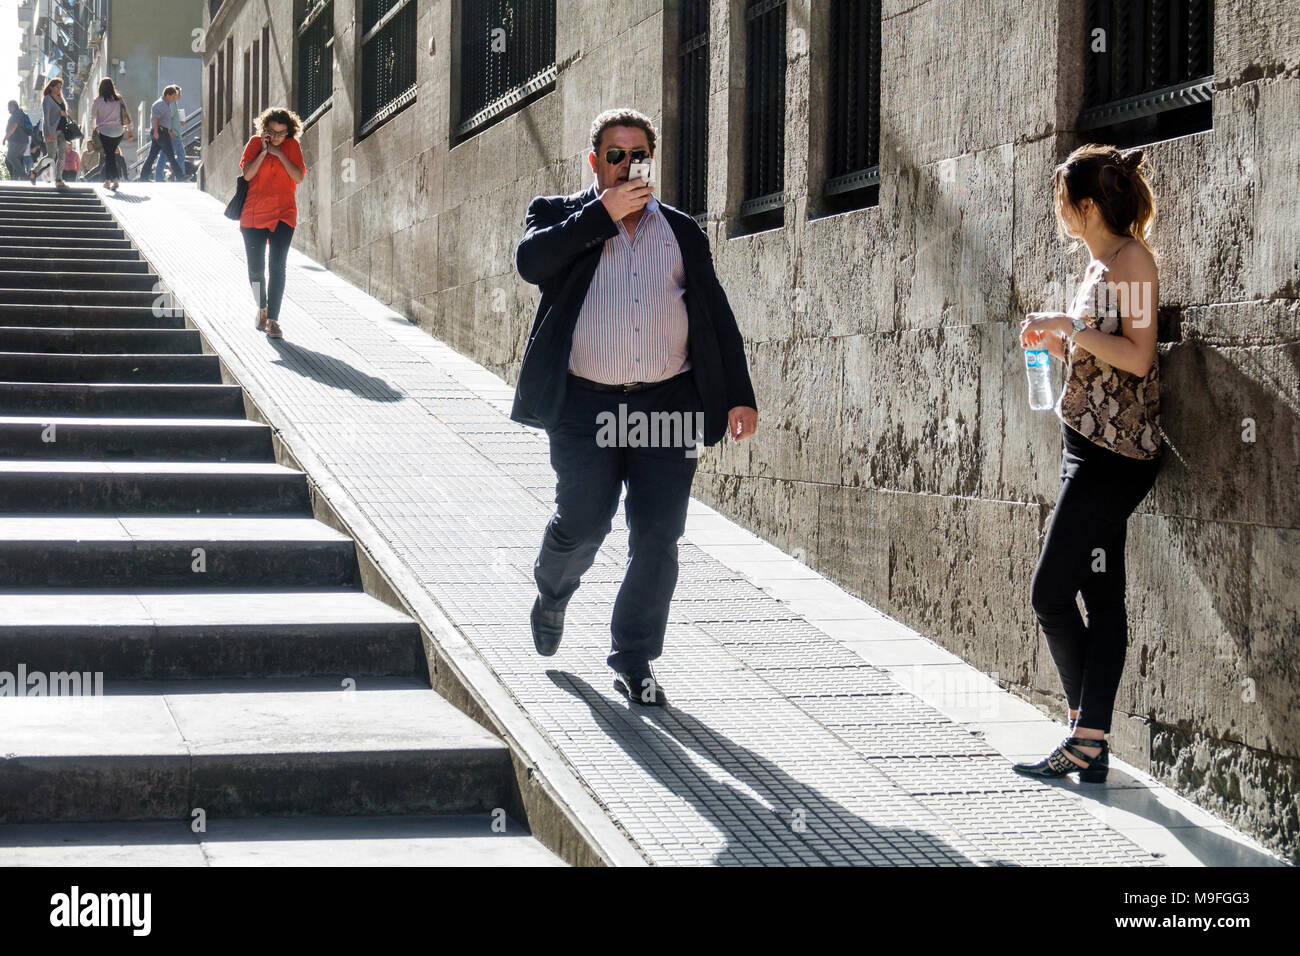 Buenos Aires Argentina Microcentro financial center pedestrian street incline uphill stairs man woman shadow walking Hispanic Argentinean Argentinian Argentine South America American - Stock Image